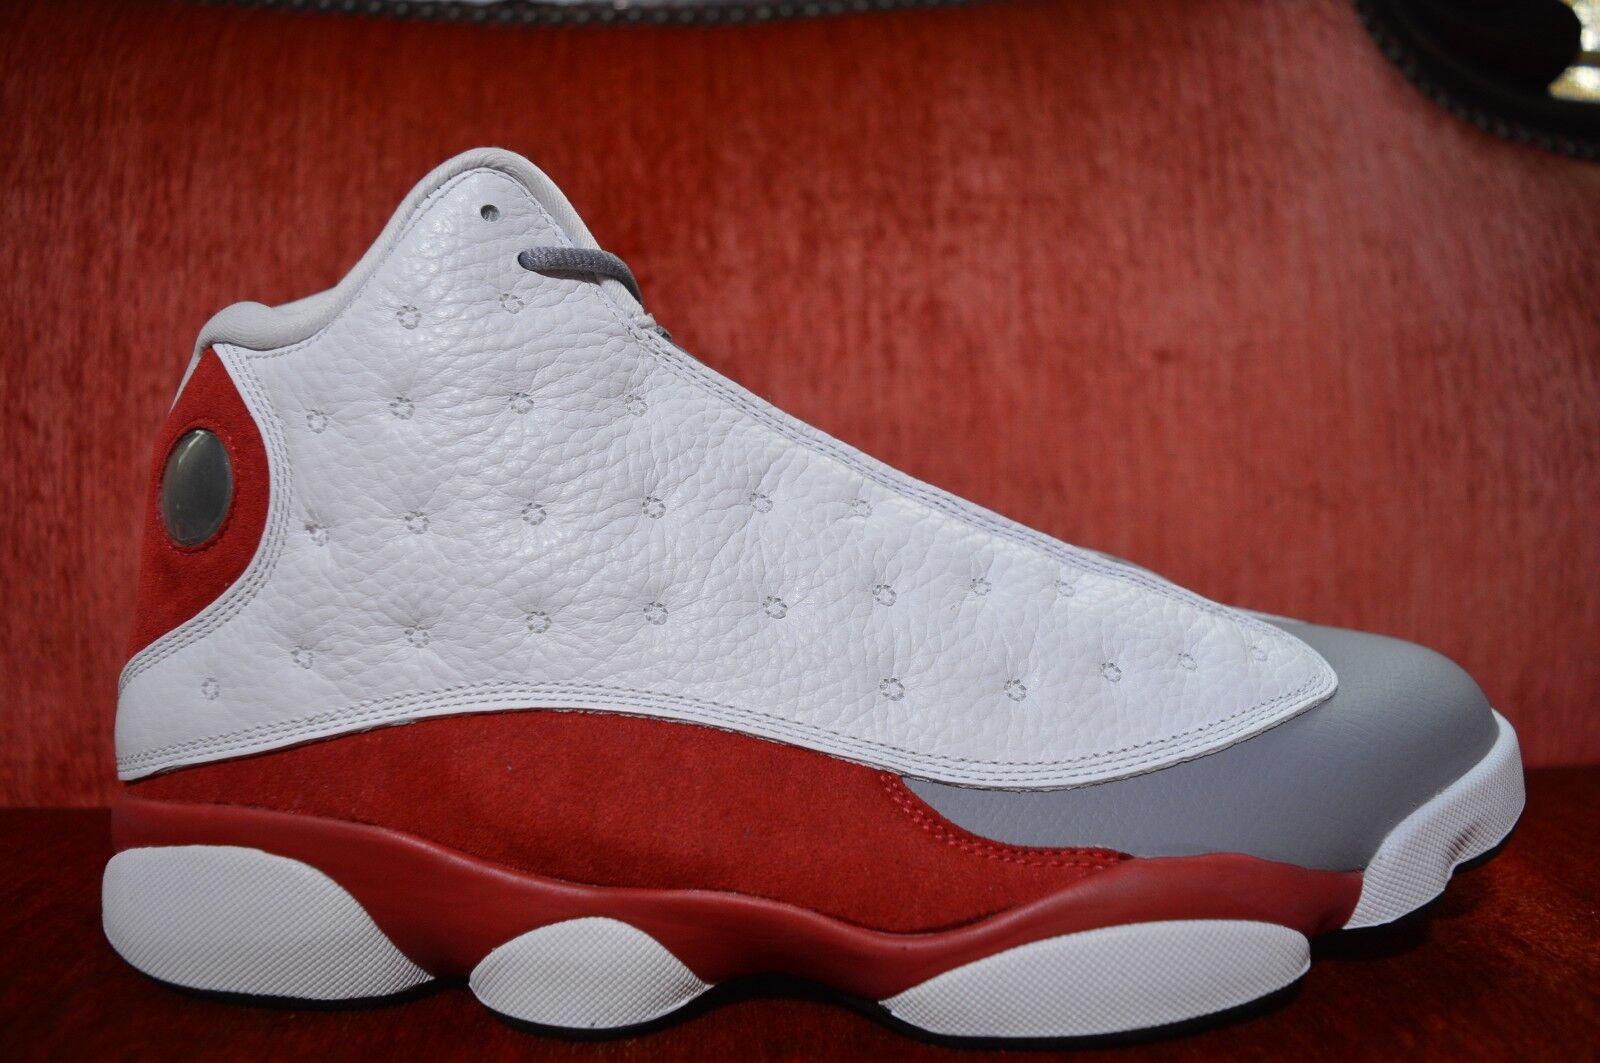 NEW Nike Air Jordan 13 XIII Retro